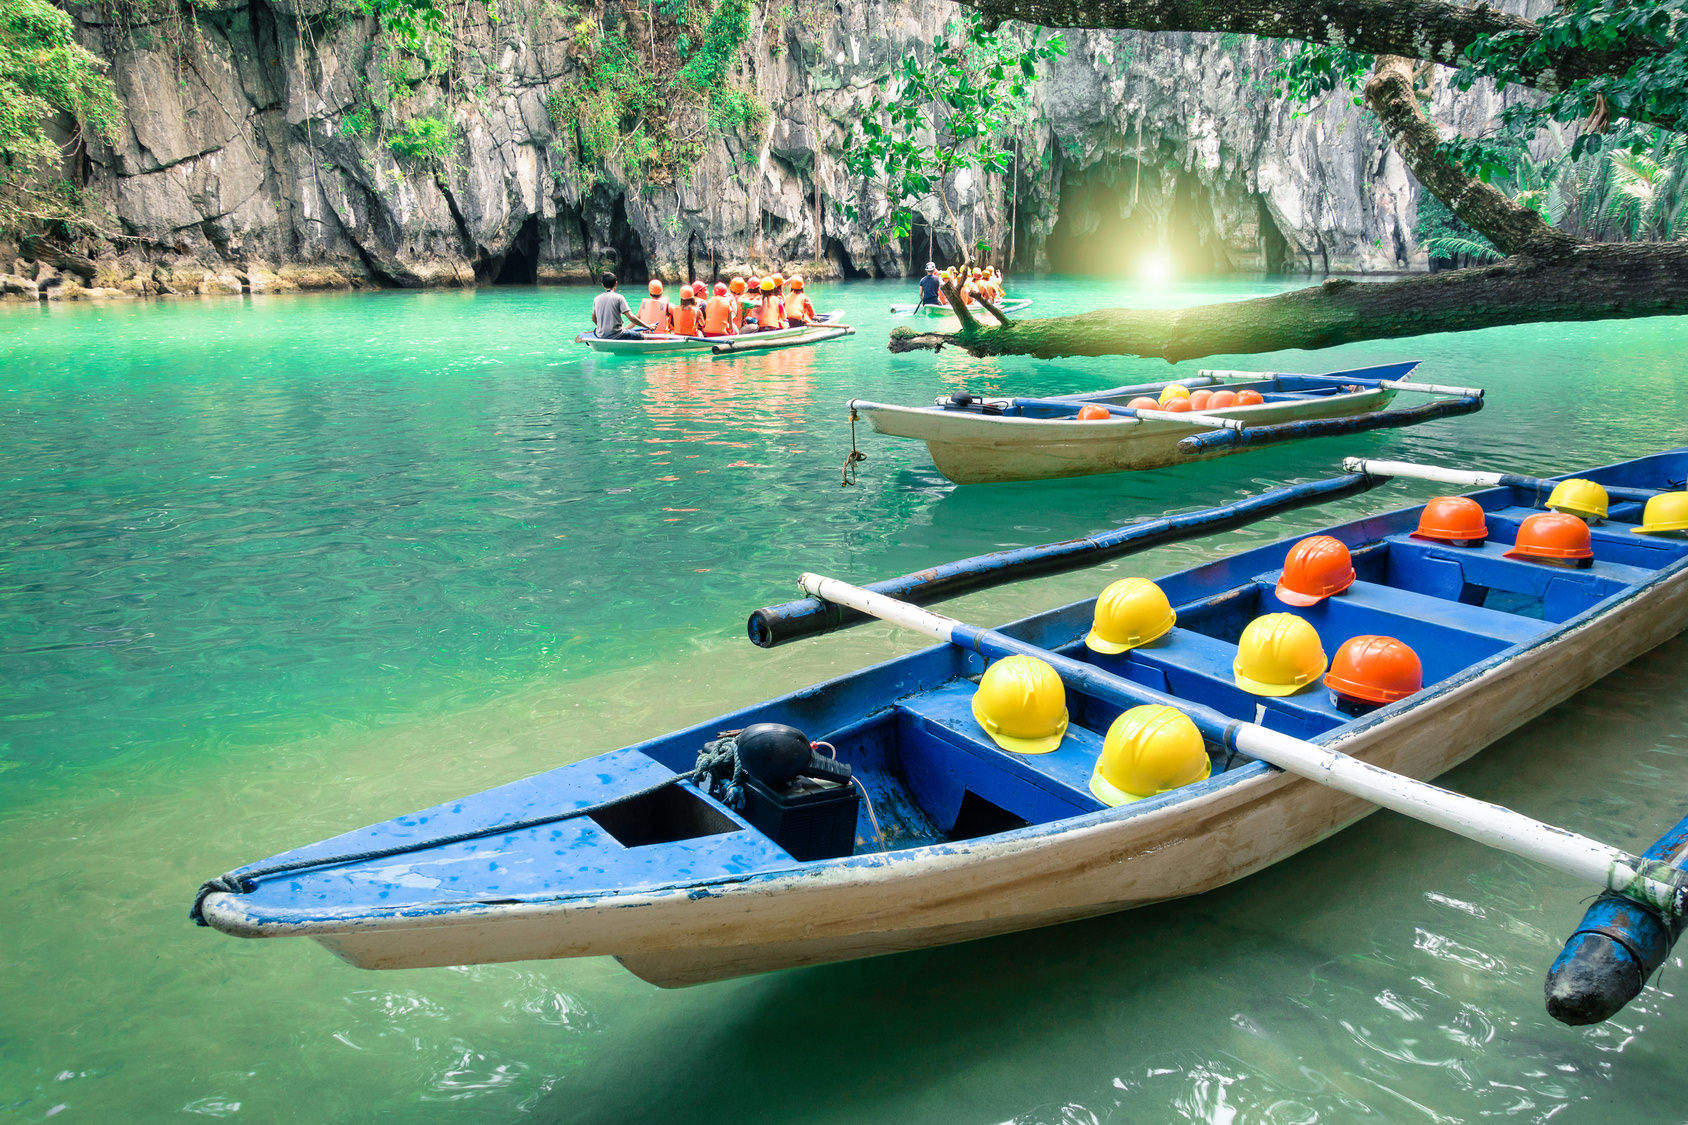 Longtail boats at entrance of Puerto Princesa subterranean river